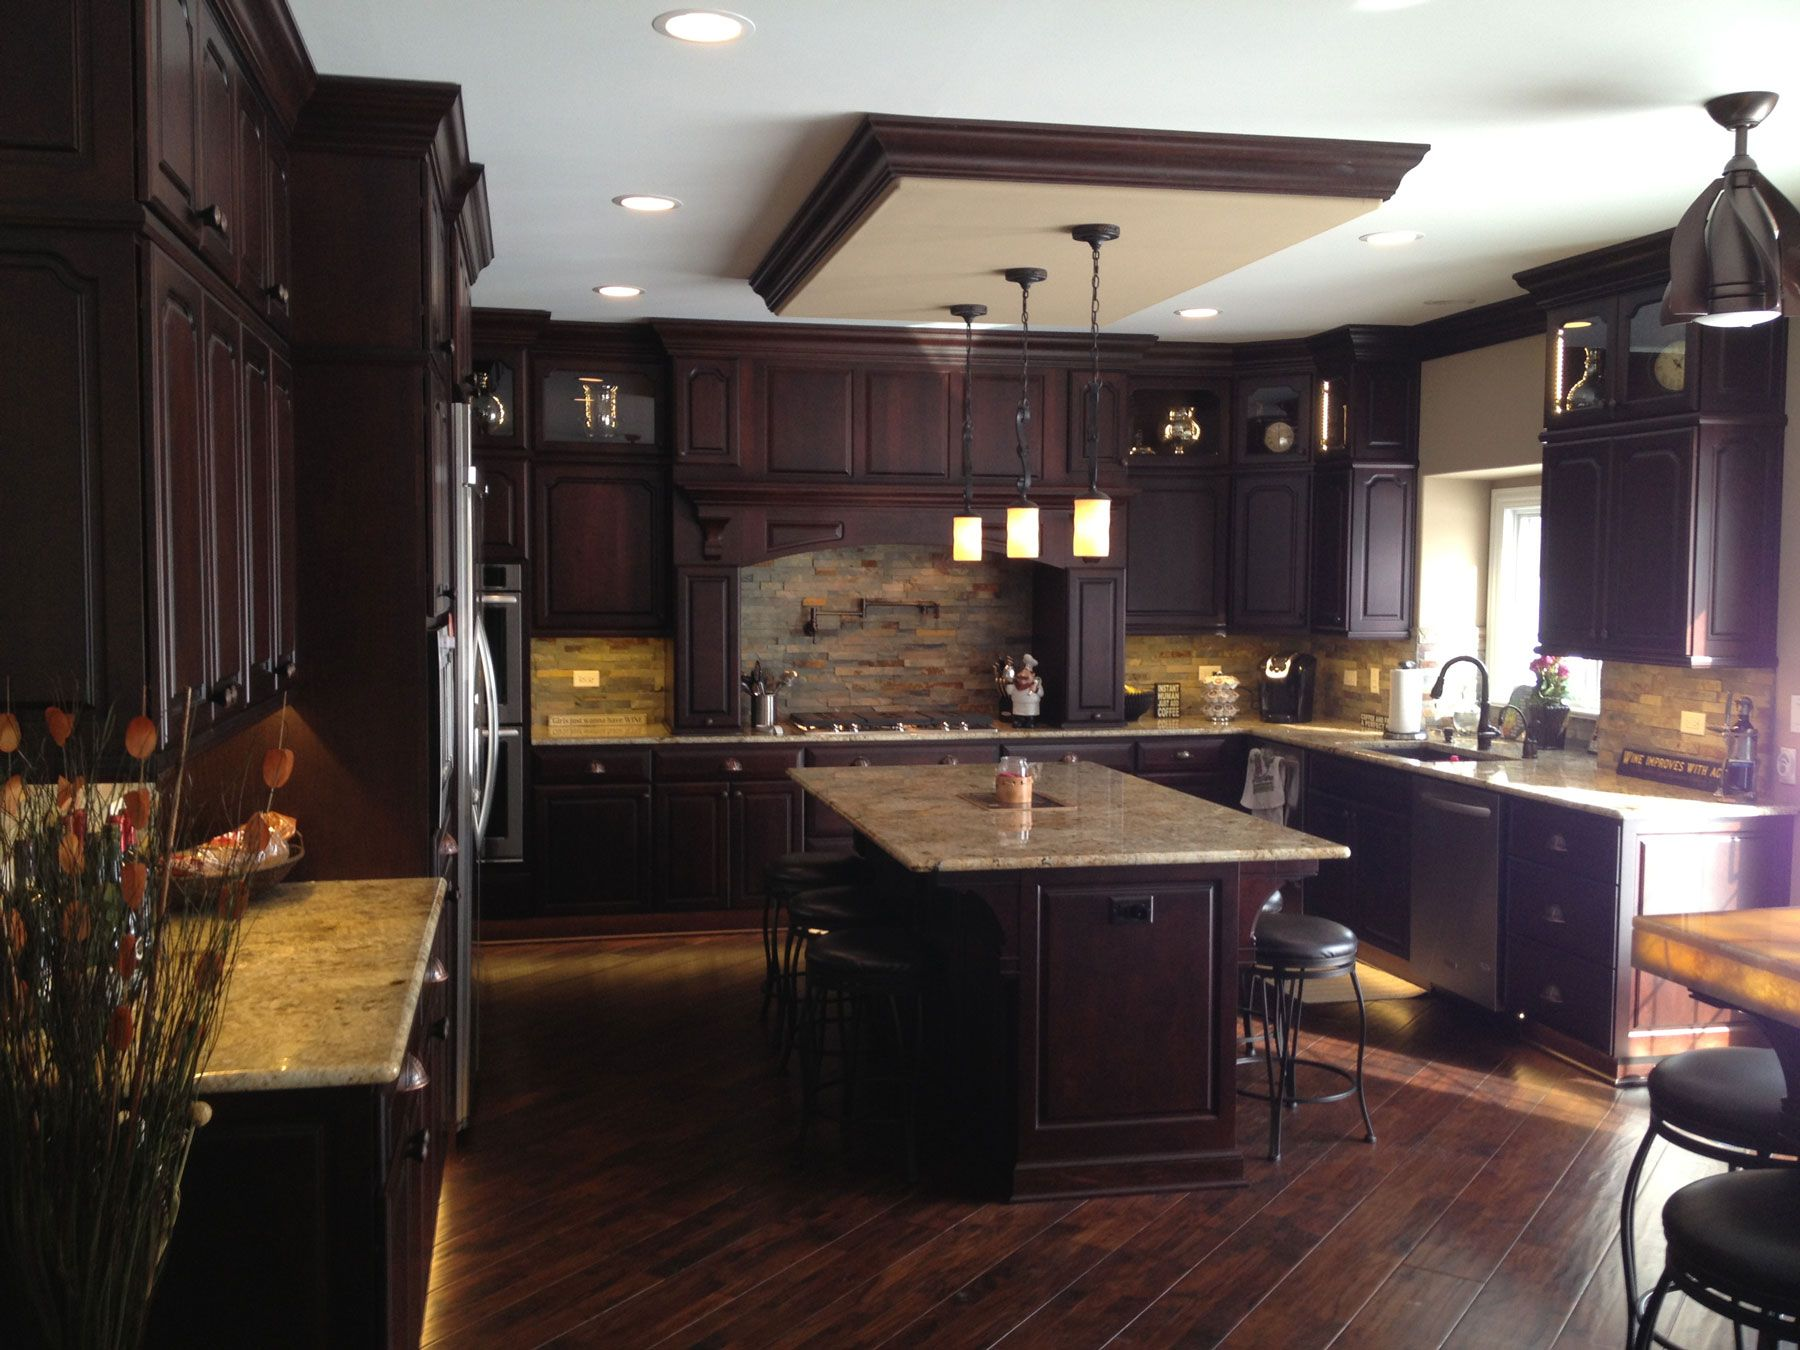 A New Home In Mokena Illinois Has An Elegant Kitchen That Is Outdone Only By The Adjacent Bar Ar Kitchen Cabinets In Bathroom Elegant Kitchens Black Kitchens